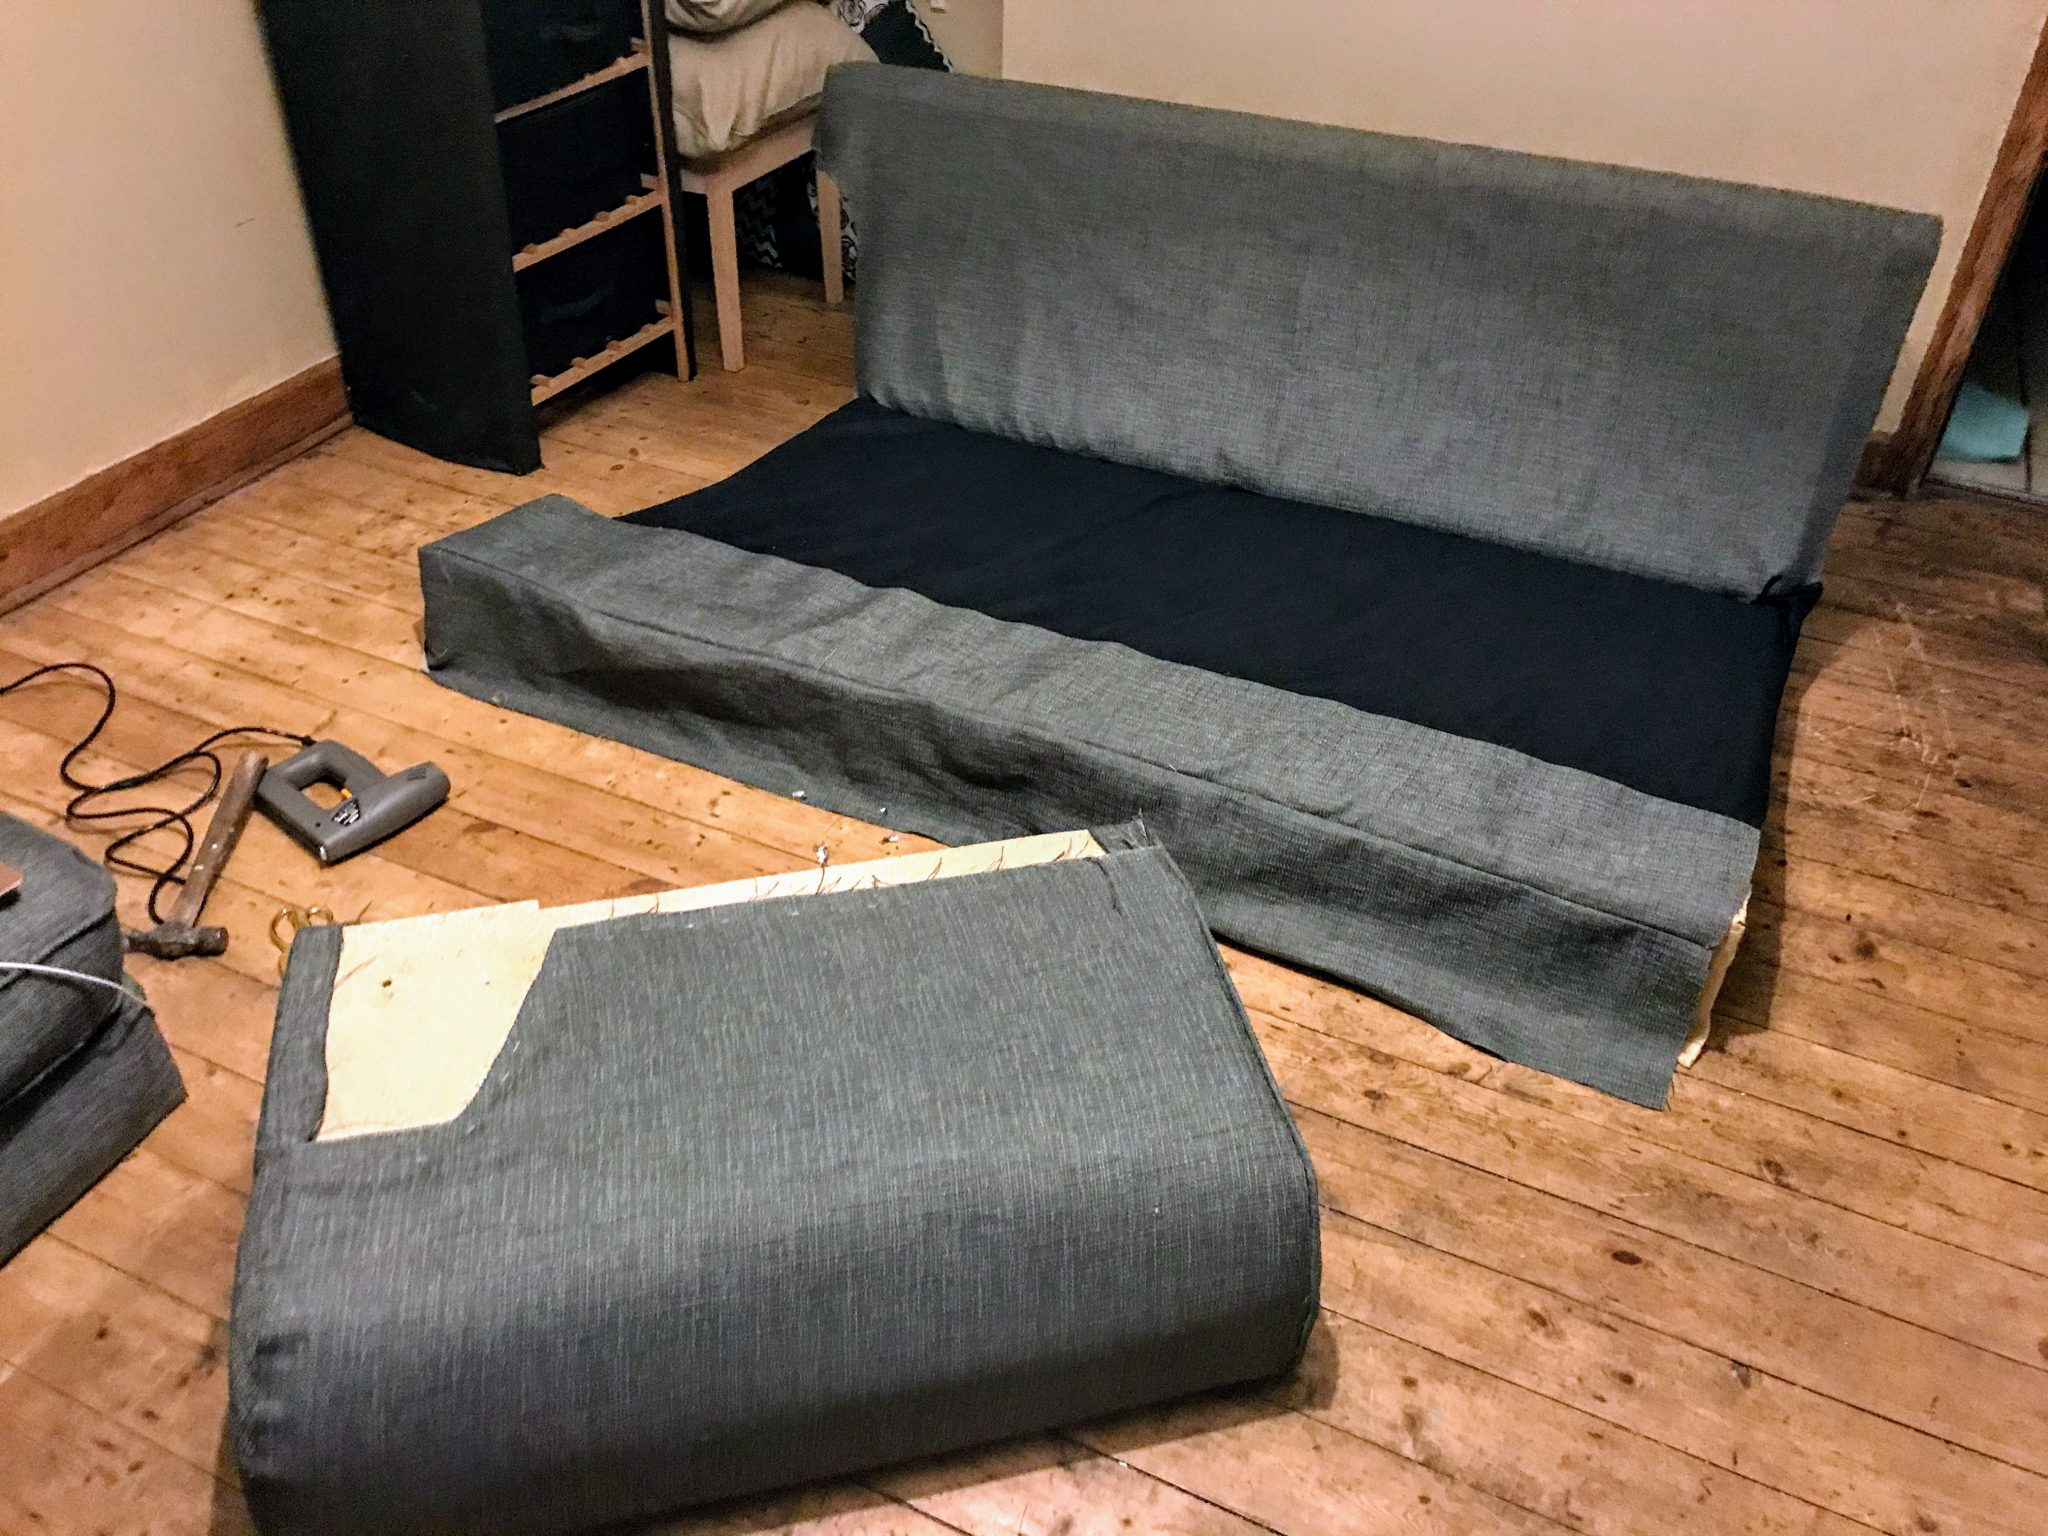 Lay pieces onto the sofa frame